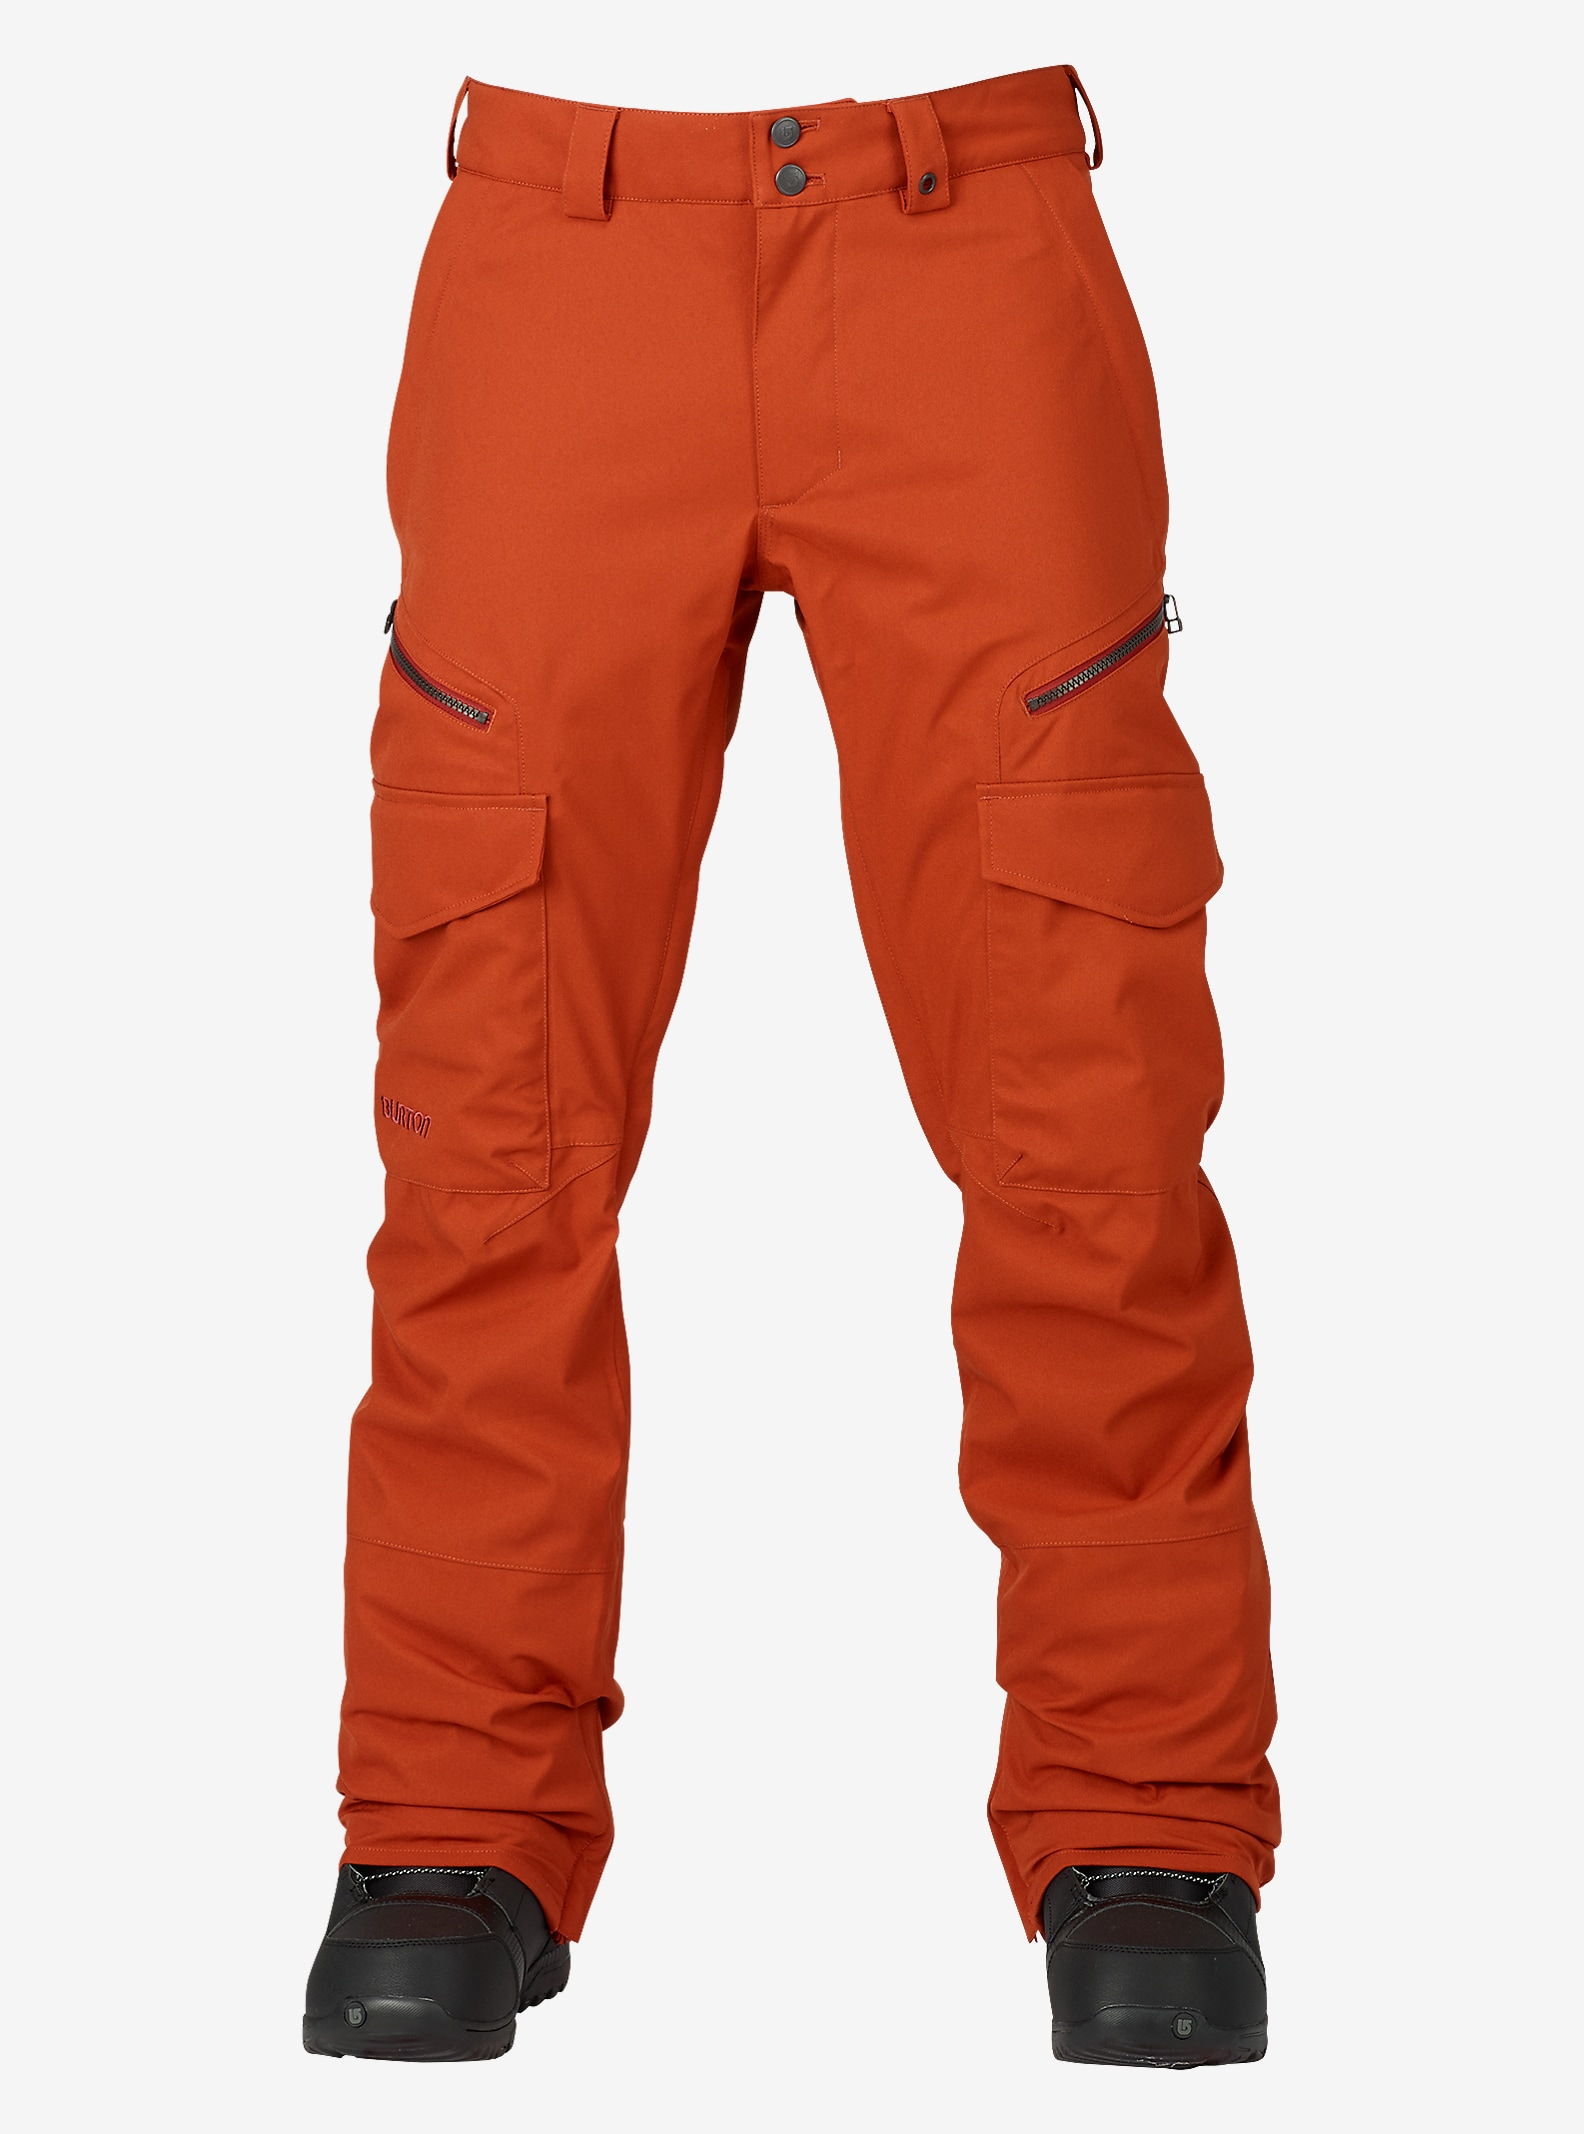 Burton TWC Headliner Pant shown in Picante